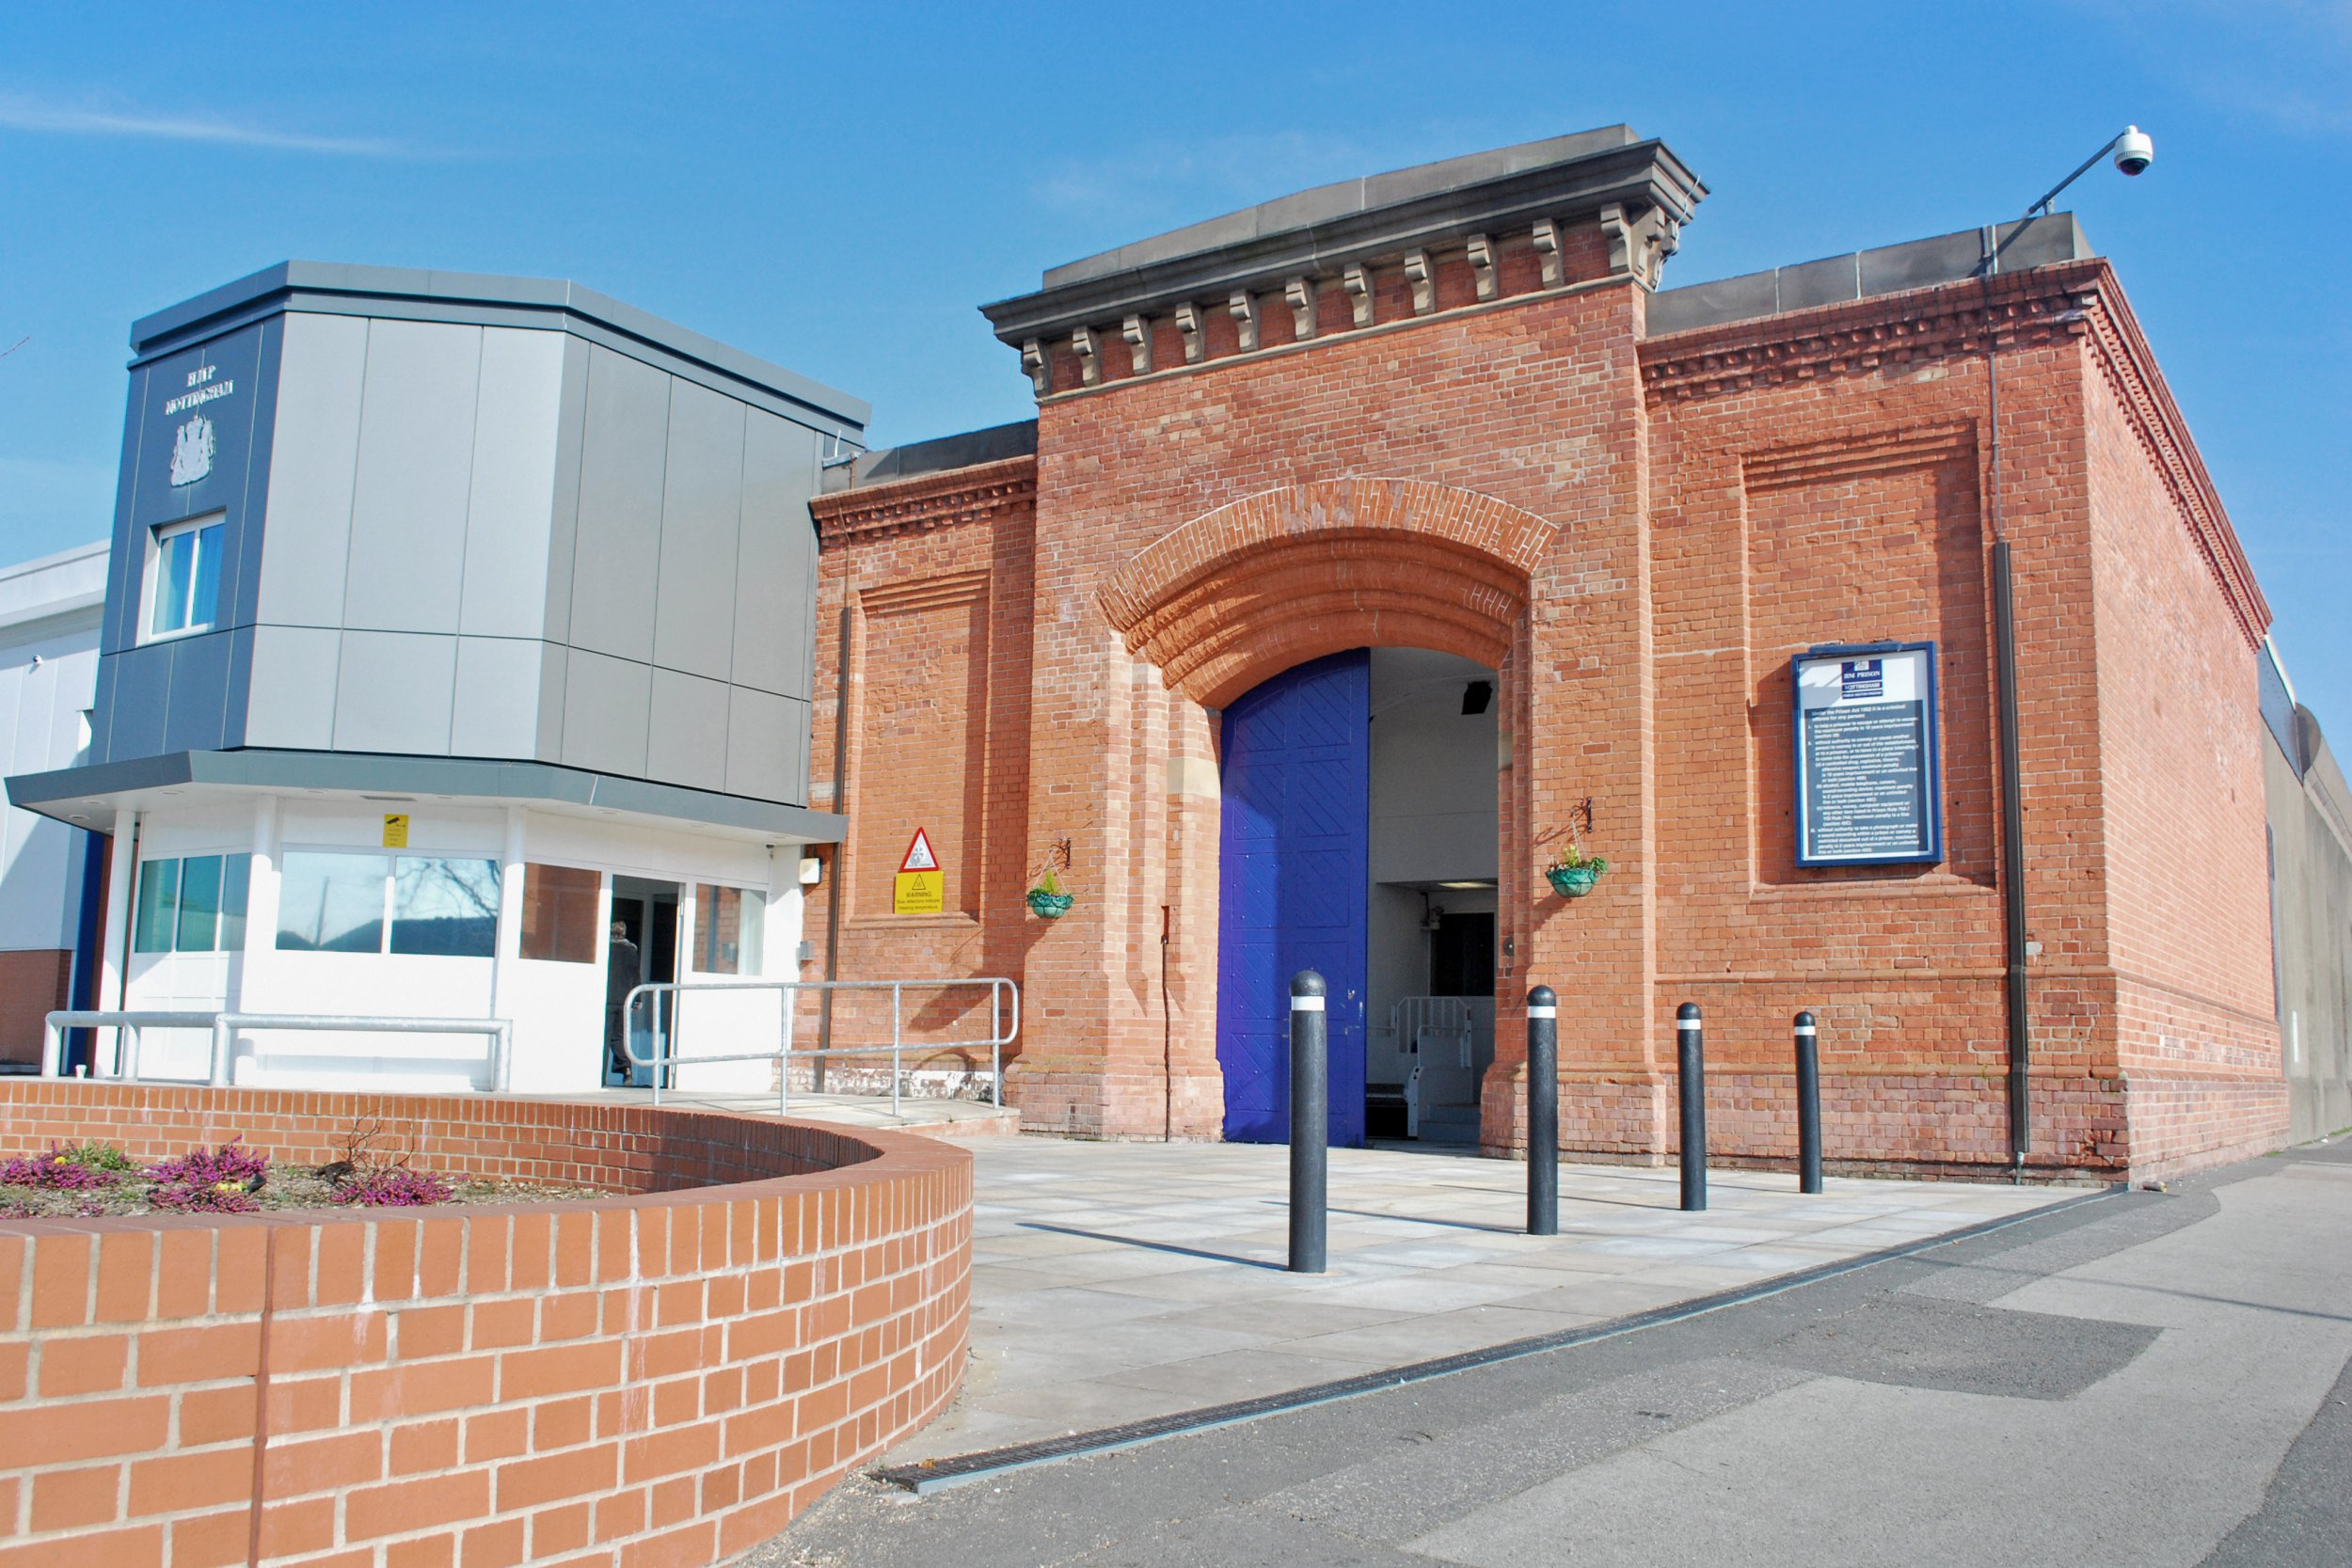 Inmate charged with GBH after cutting prison officer's throat with razor